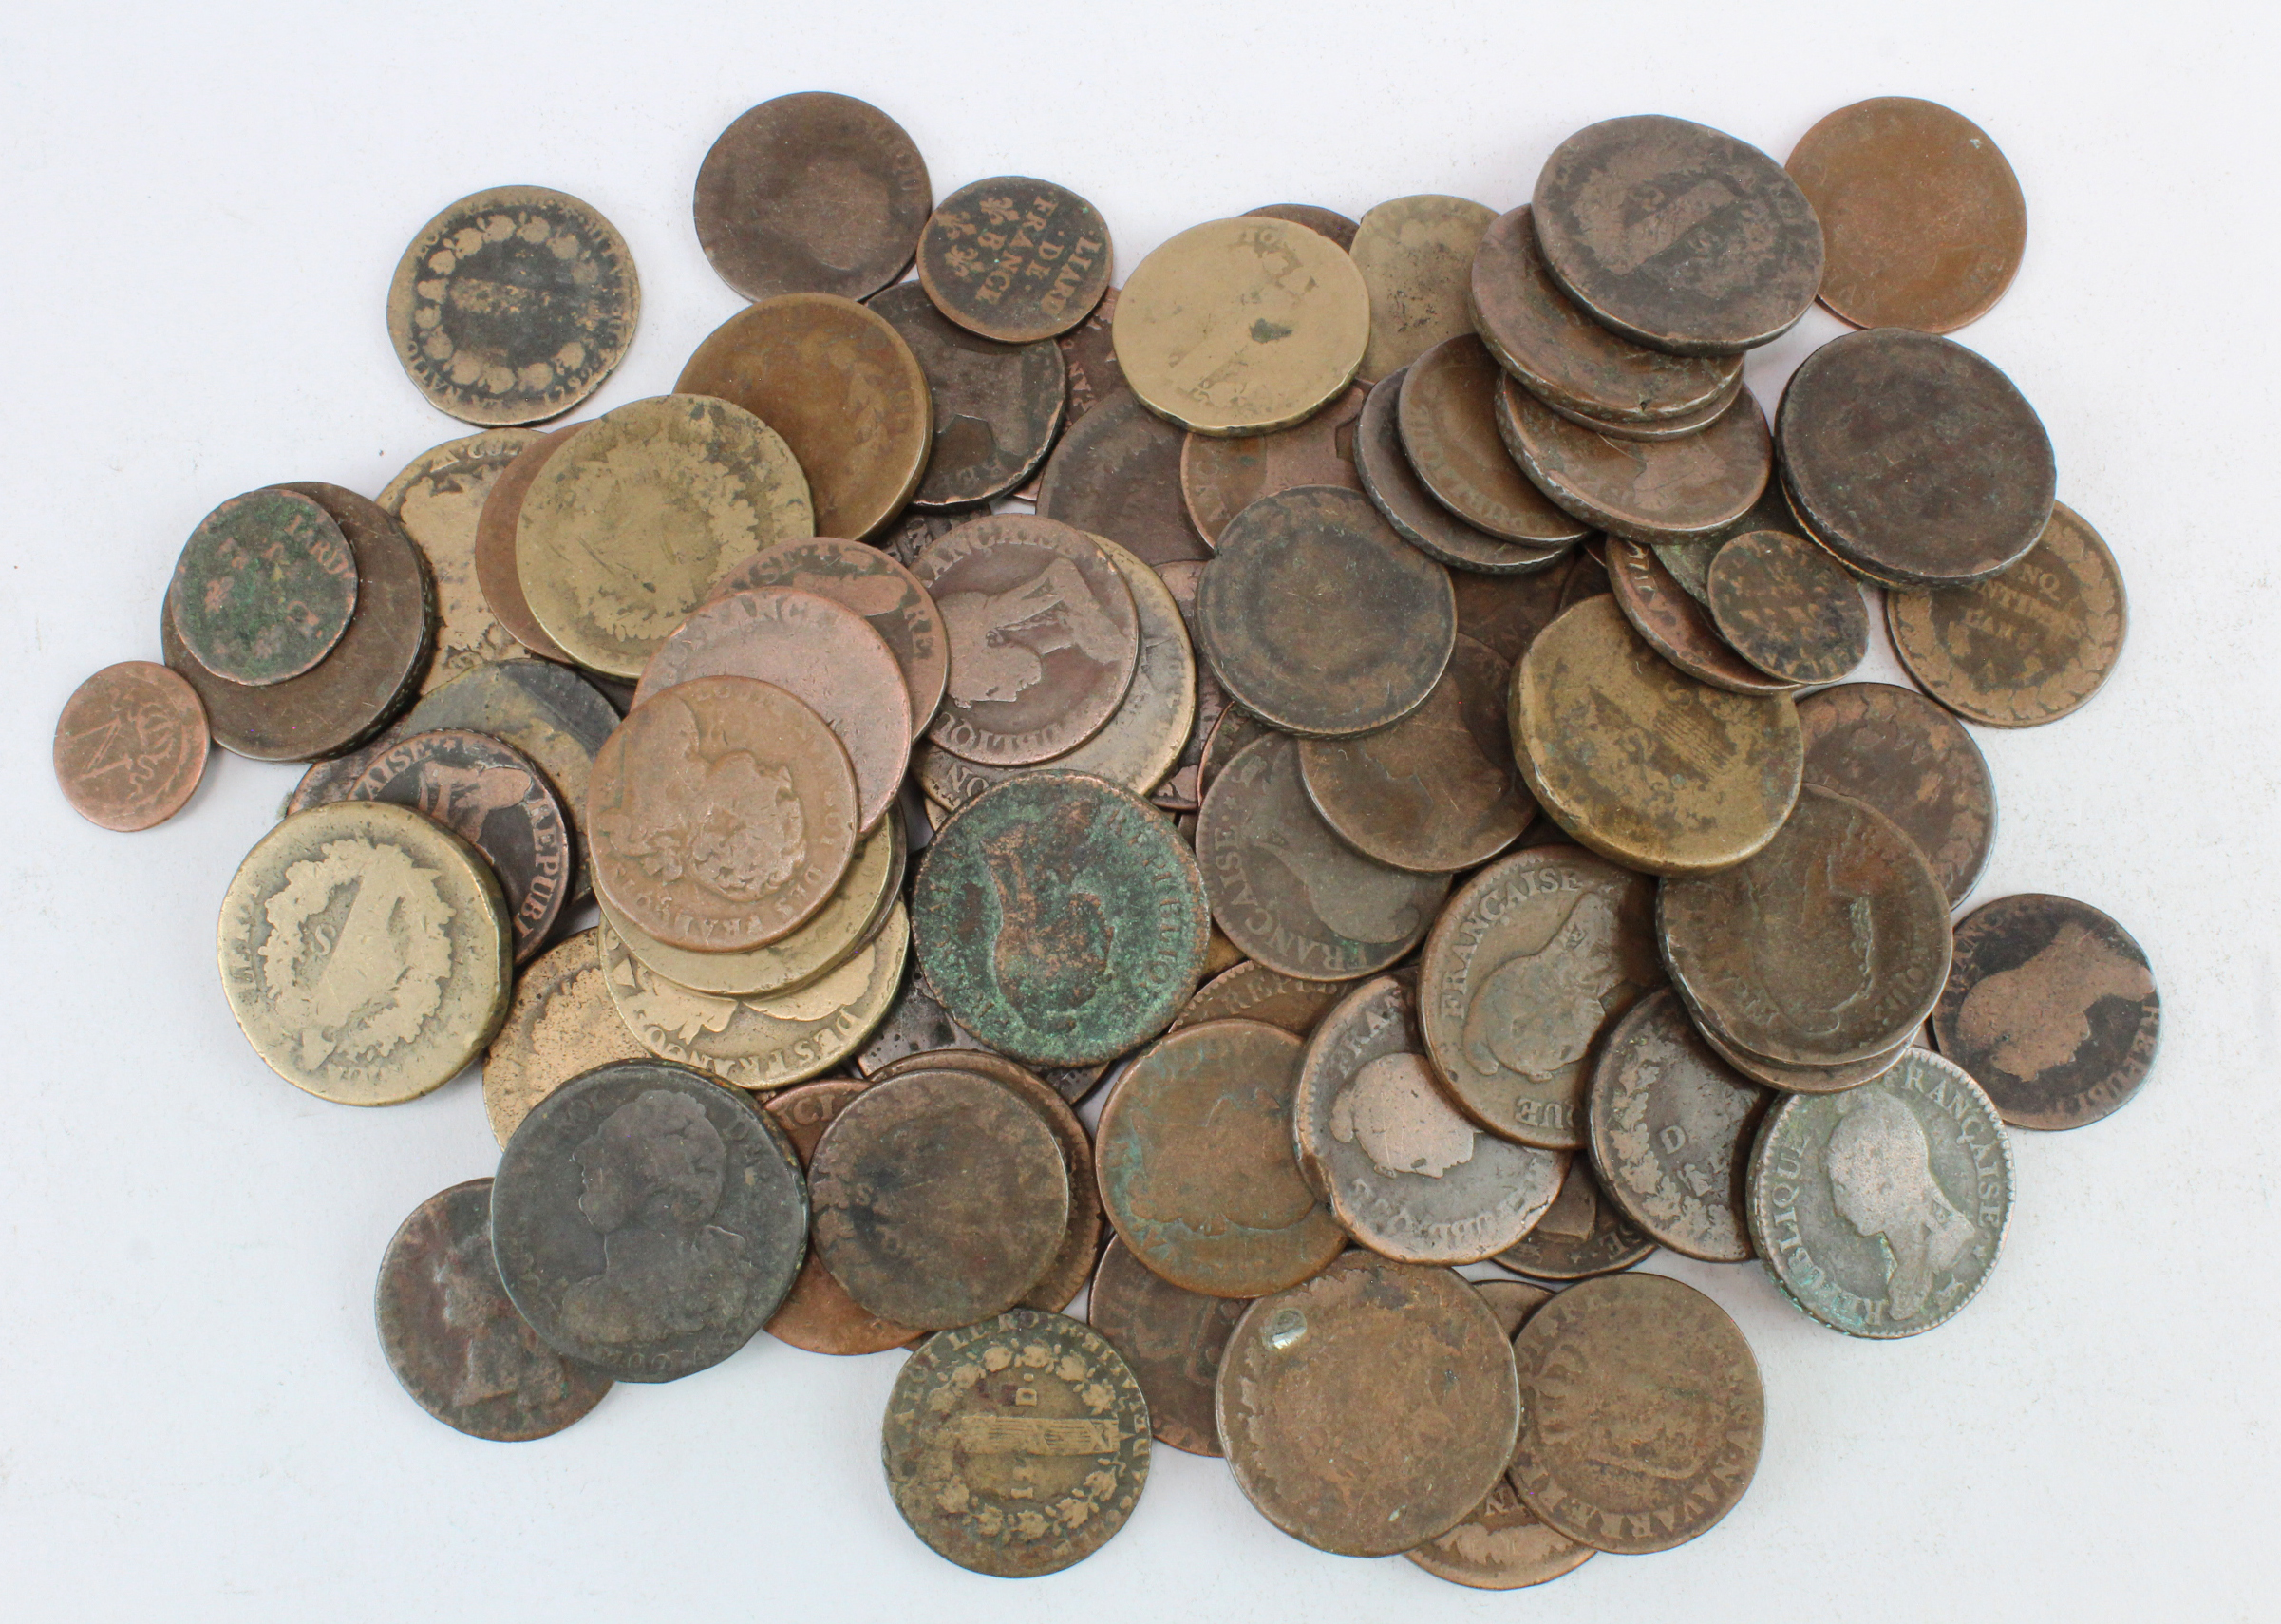 France, quantity of 17th-18thC bronze coinage in a tub, mostly Revolutionary era.